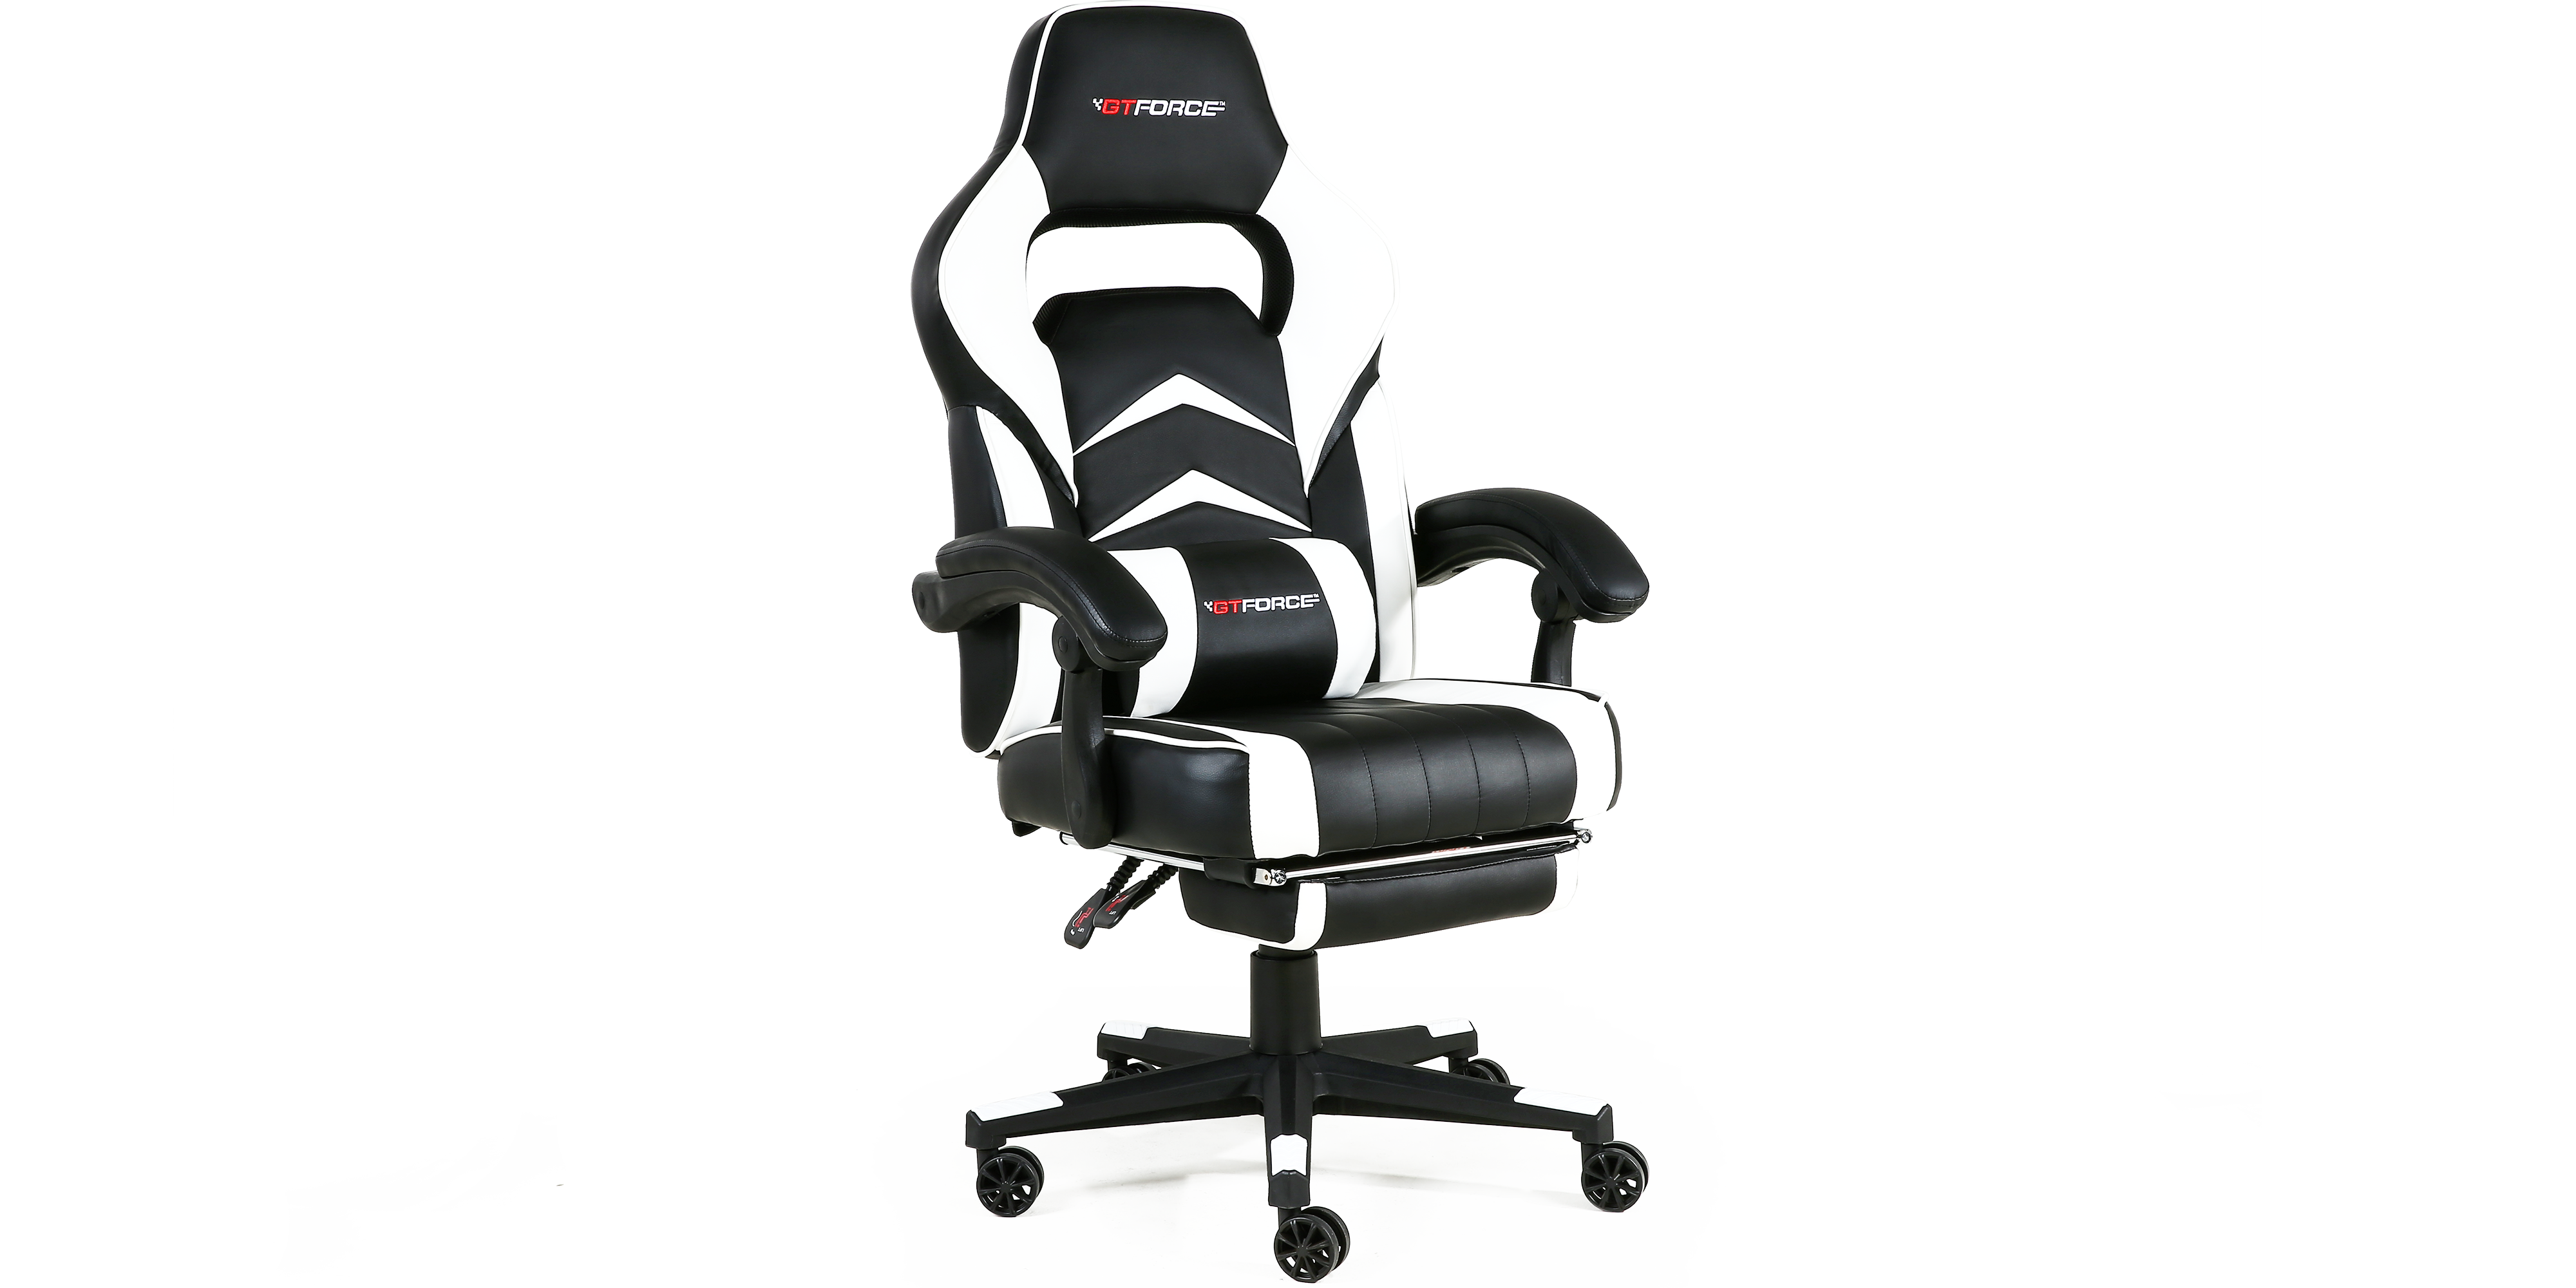 Turbo Gaming Chair With Recline And Footrest In Black White